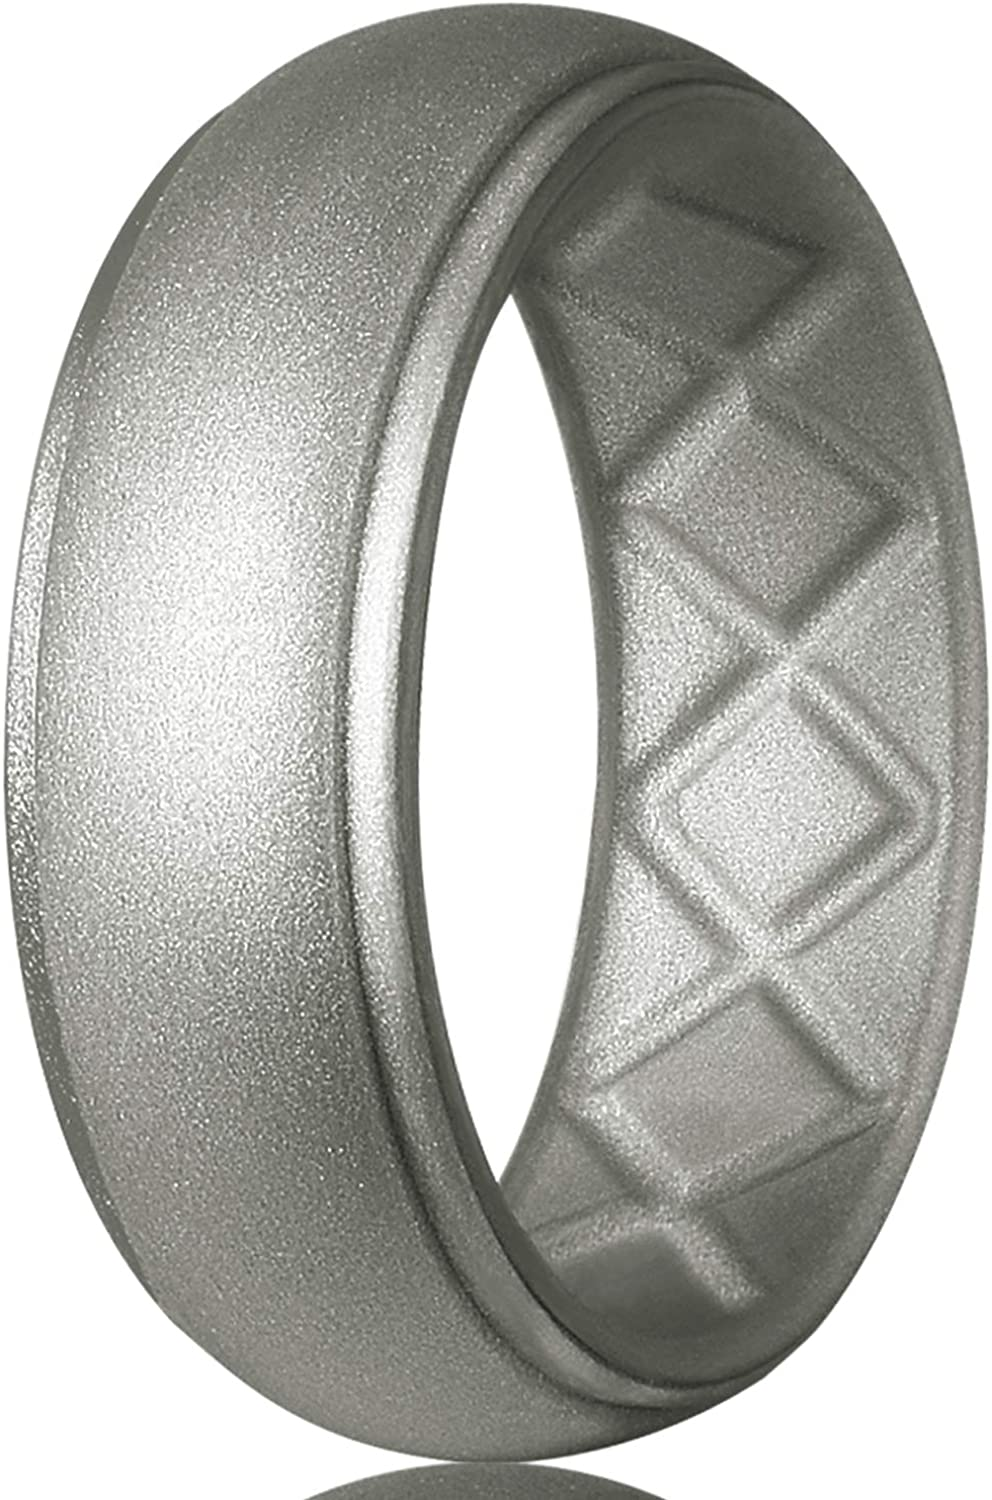 Egnaro Silicone Ring for Men, 7 Rings / 4 Rings / 1 Ring Step Edge Rubber Wedding Bands 8.5mm Wide - 2.5mm Thick